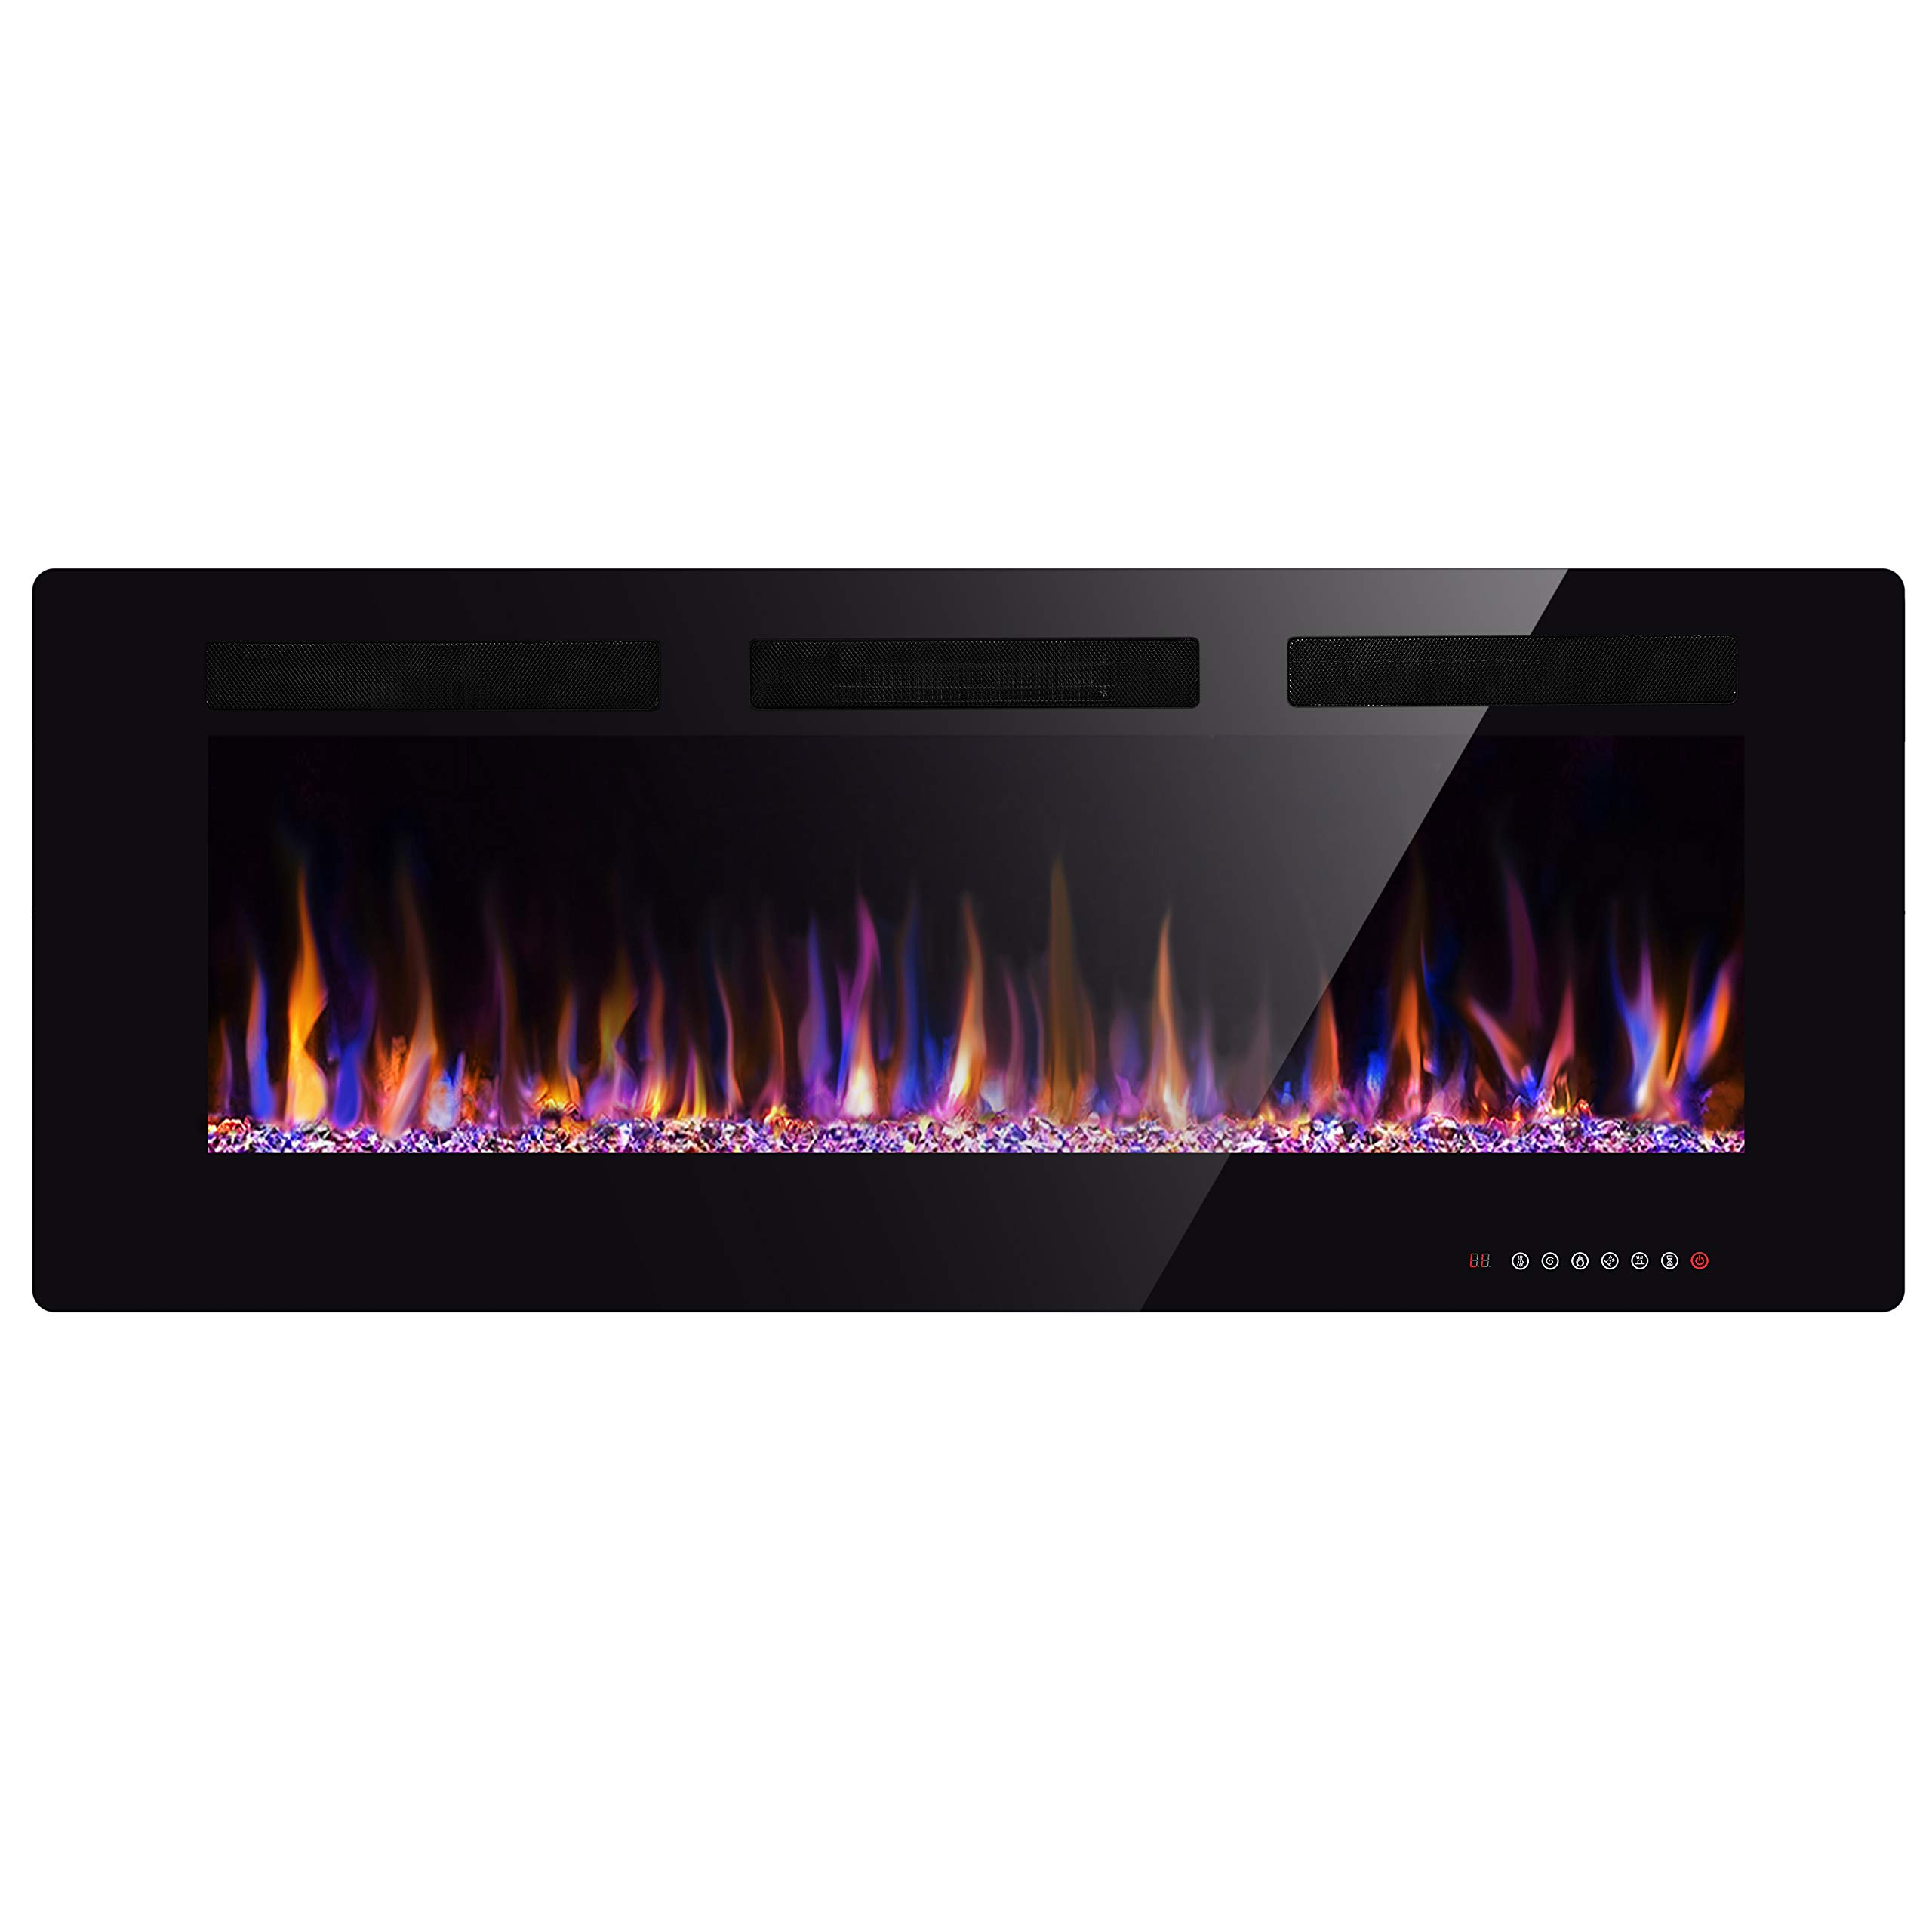 Xbeauty 50'' Electric Fireplace in-Wall Recessed and Wall Mounted 1500W Fireplace Heater and Linear Fireplace with Timer/Multicolor Flames/Touch Screen/Remote Control (Black) by Xbeauty